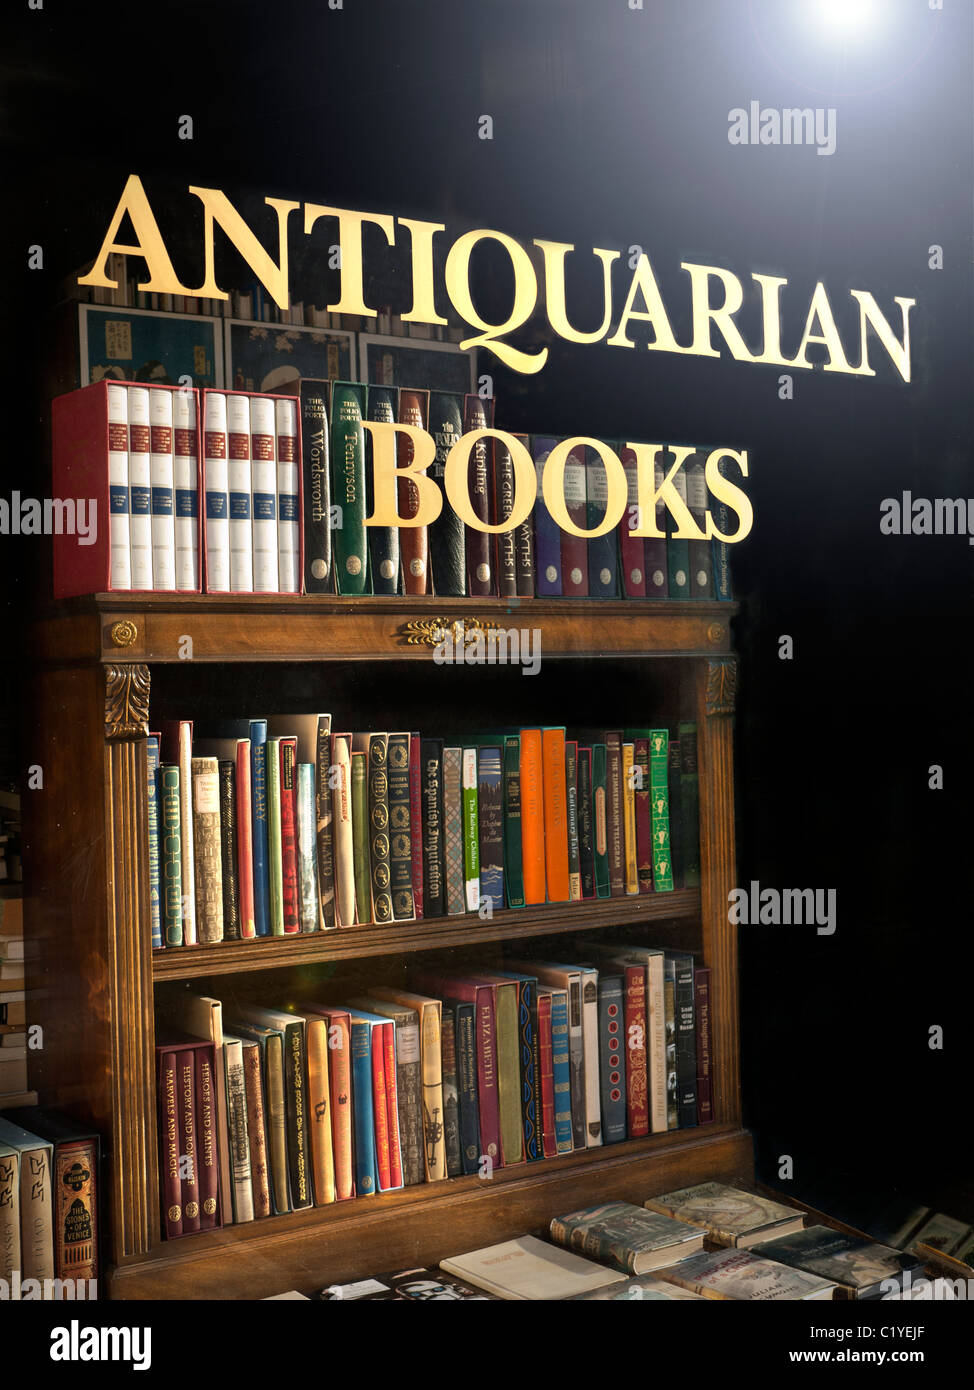 Antiquarian Bookshop window with sign and antique books and bookcase on display - Stock Image